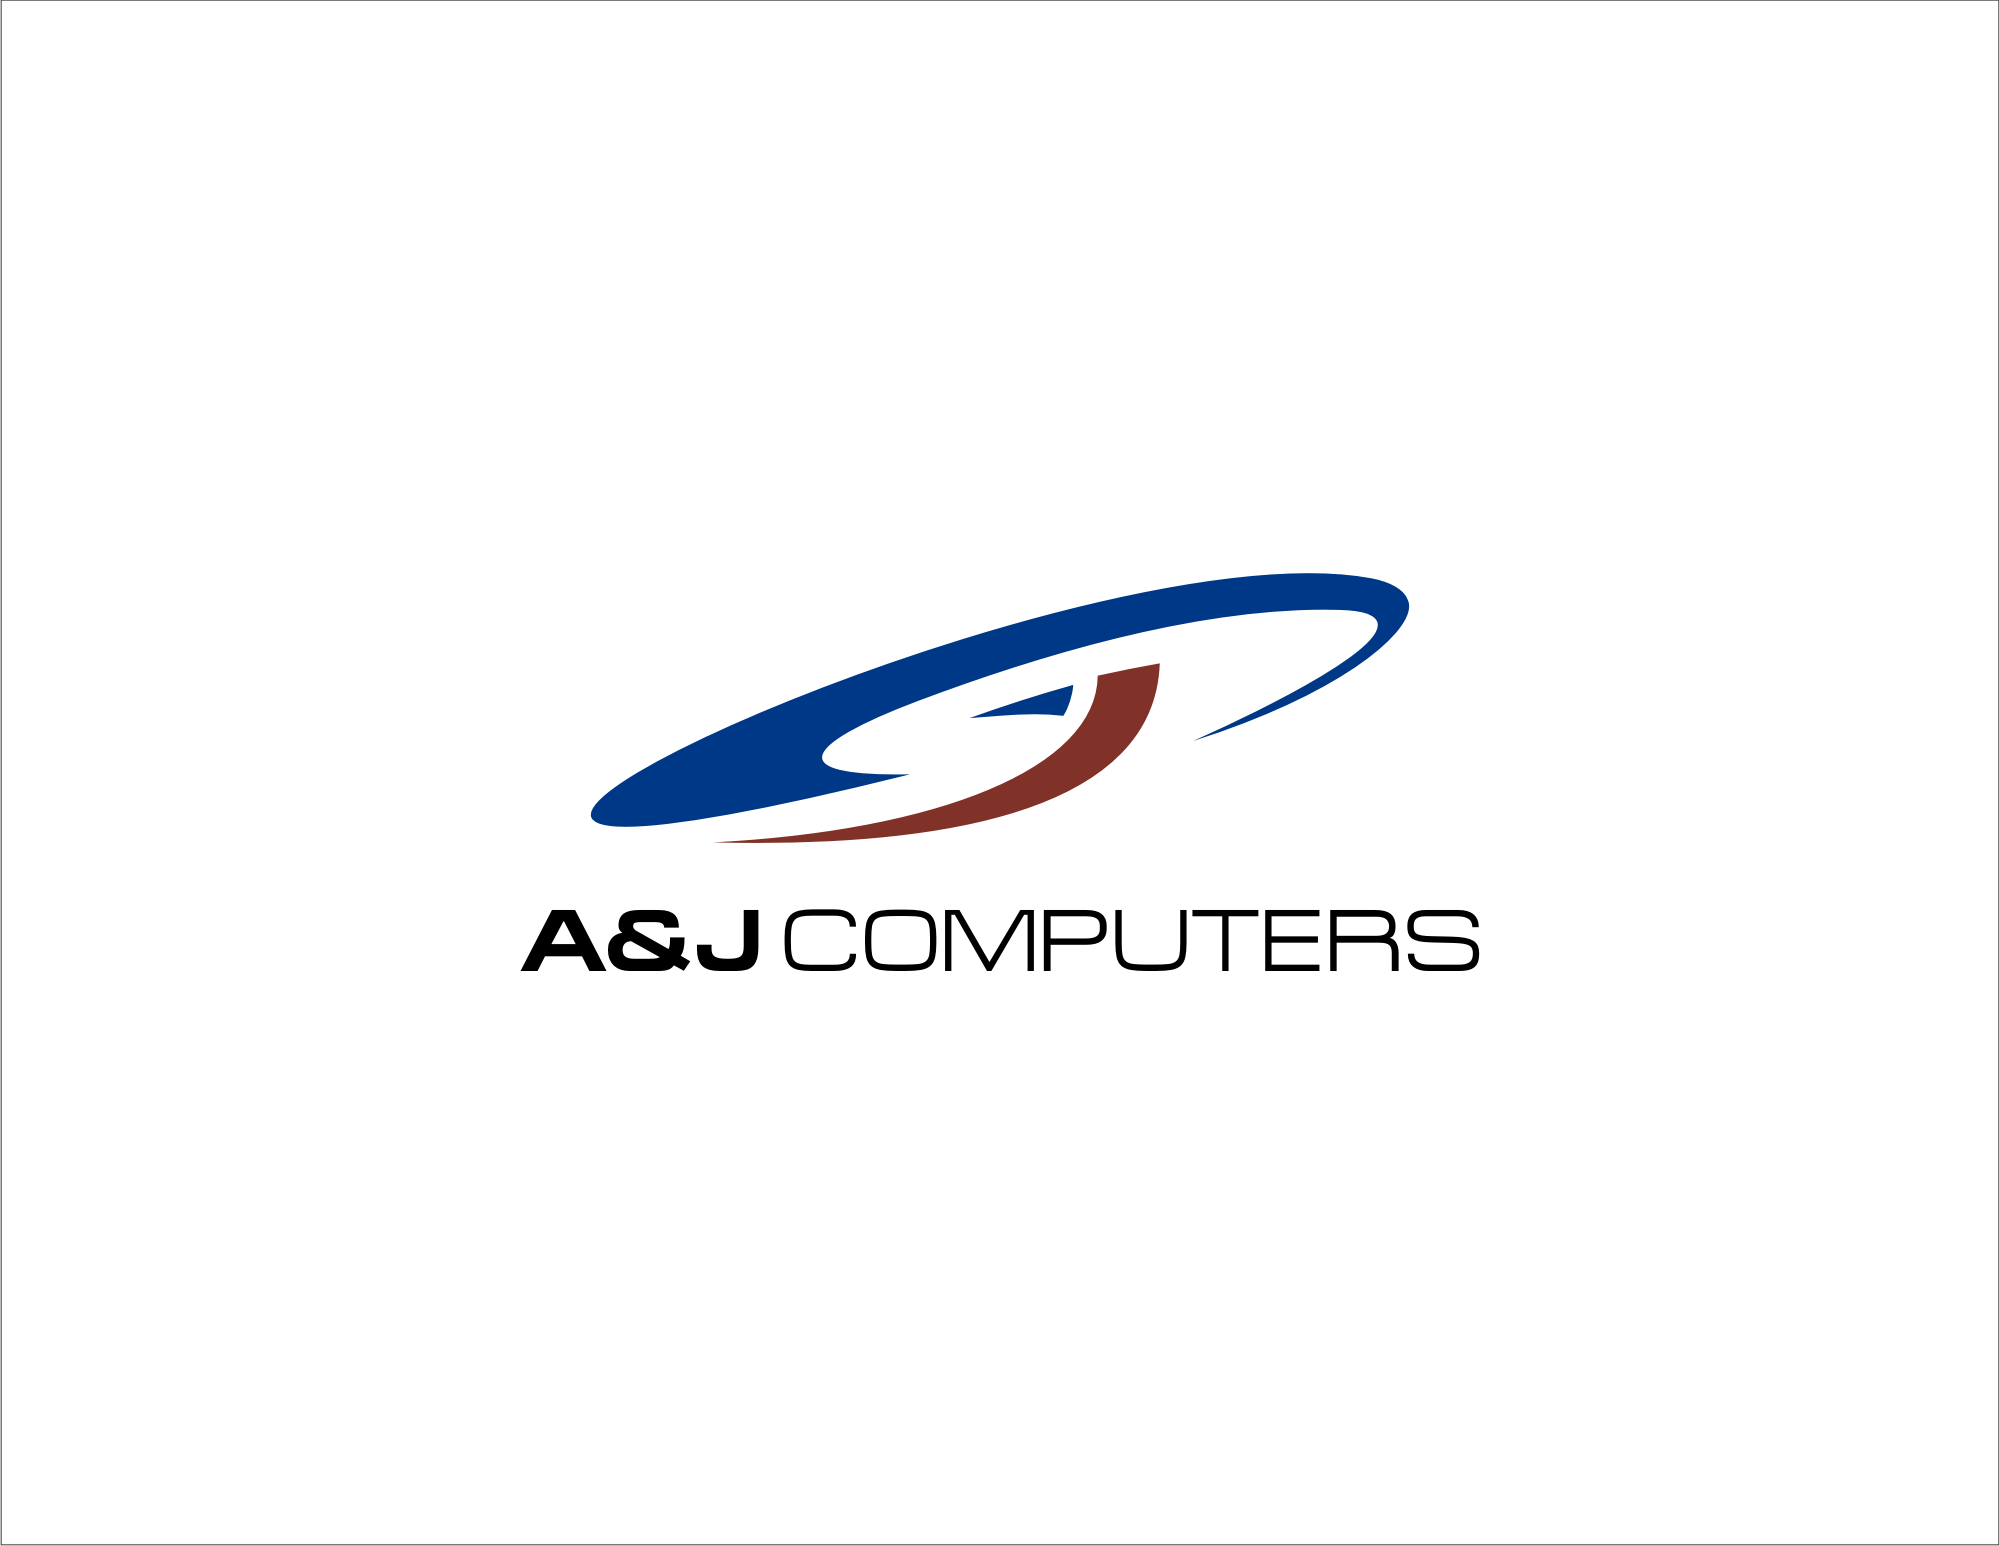 Logo design for A&J Computers